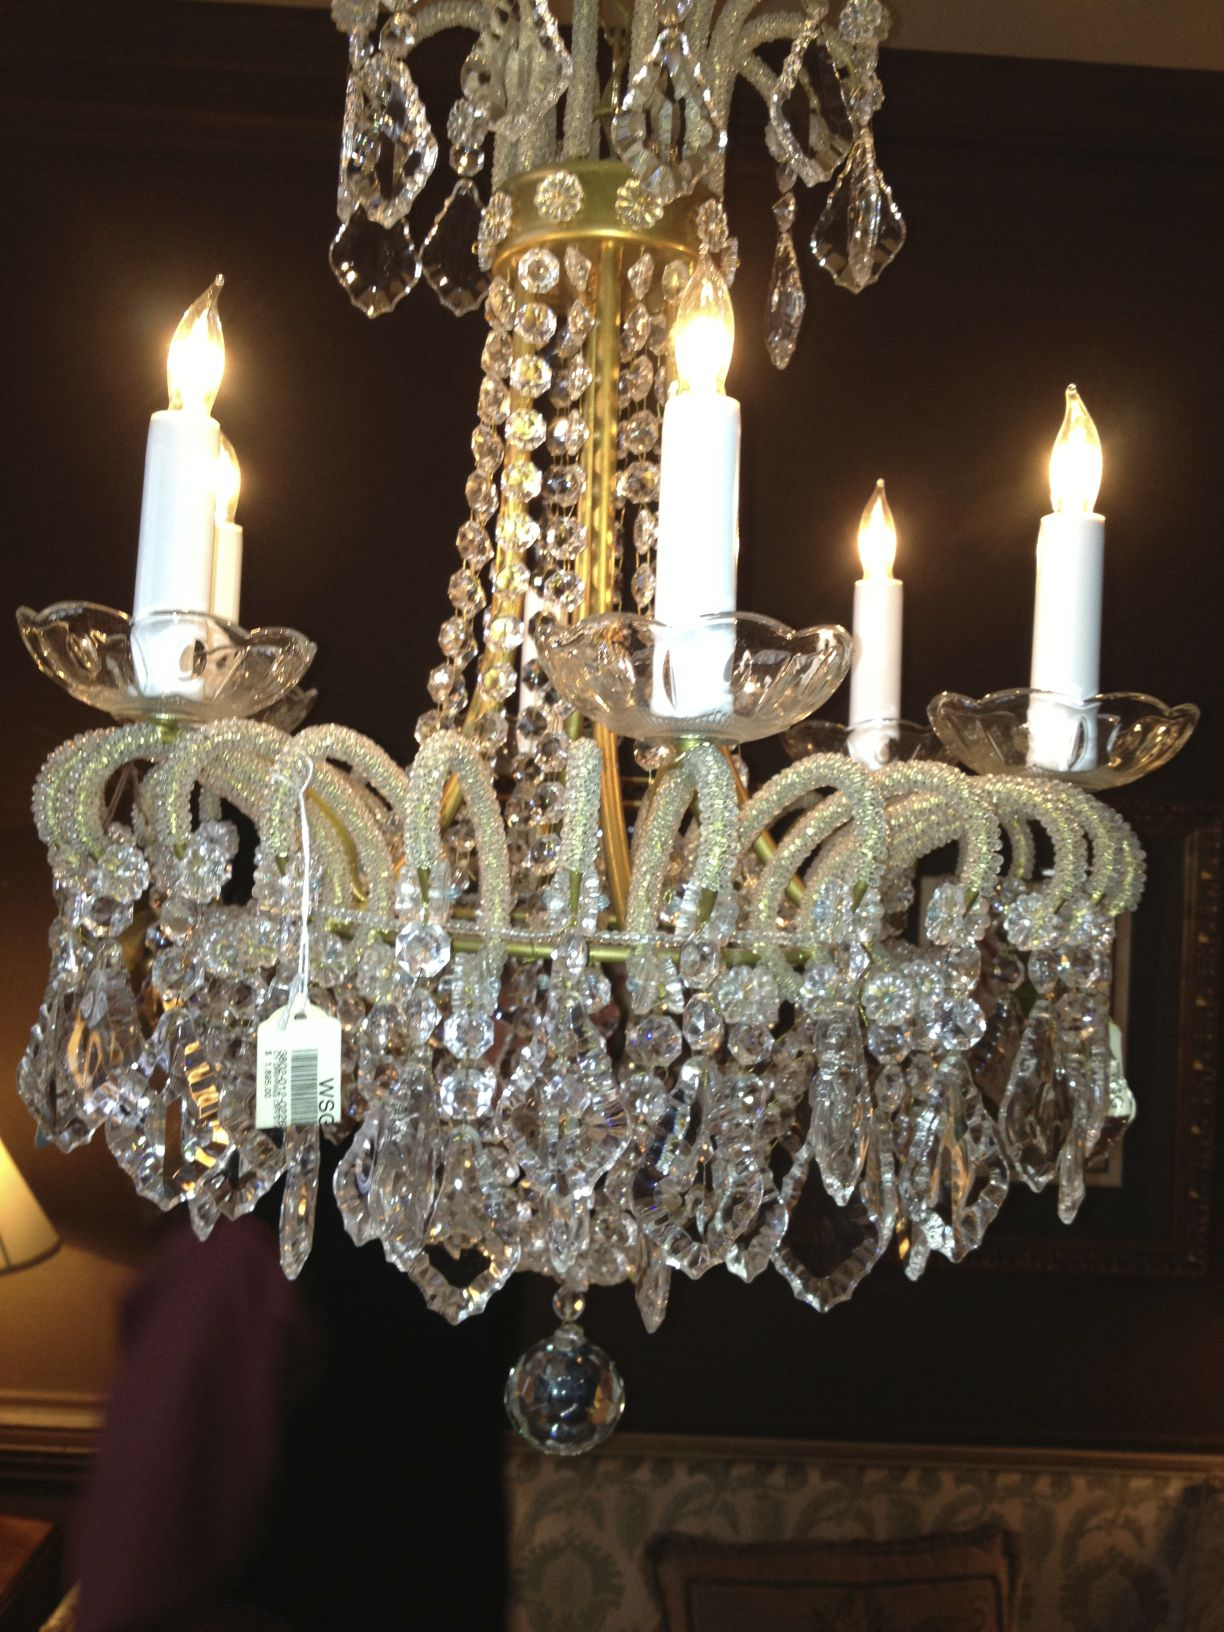 Another crystal chandelier from Shelbyville